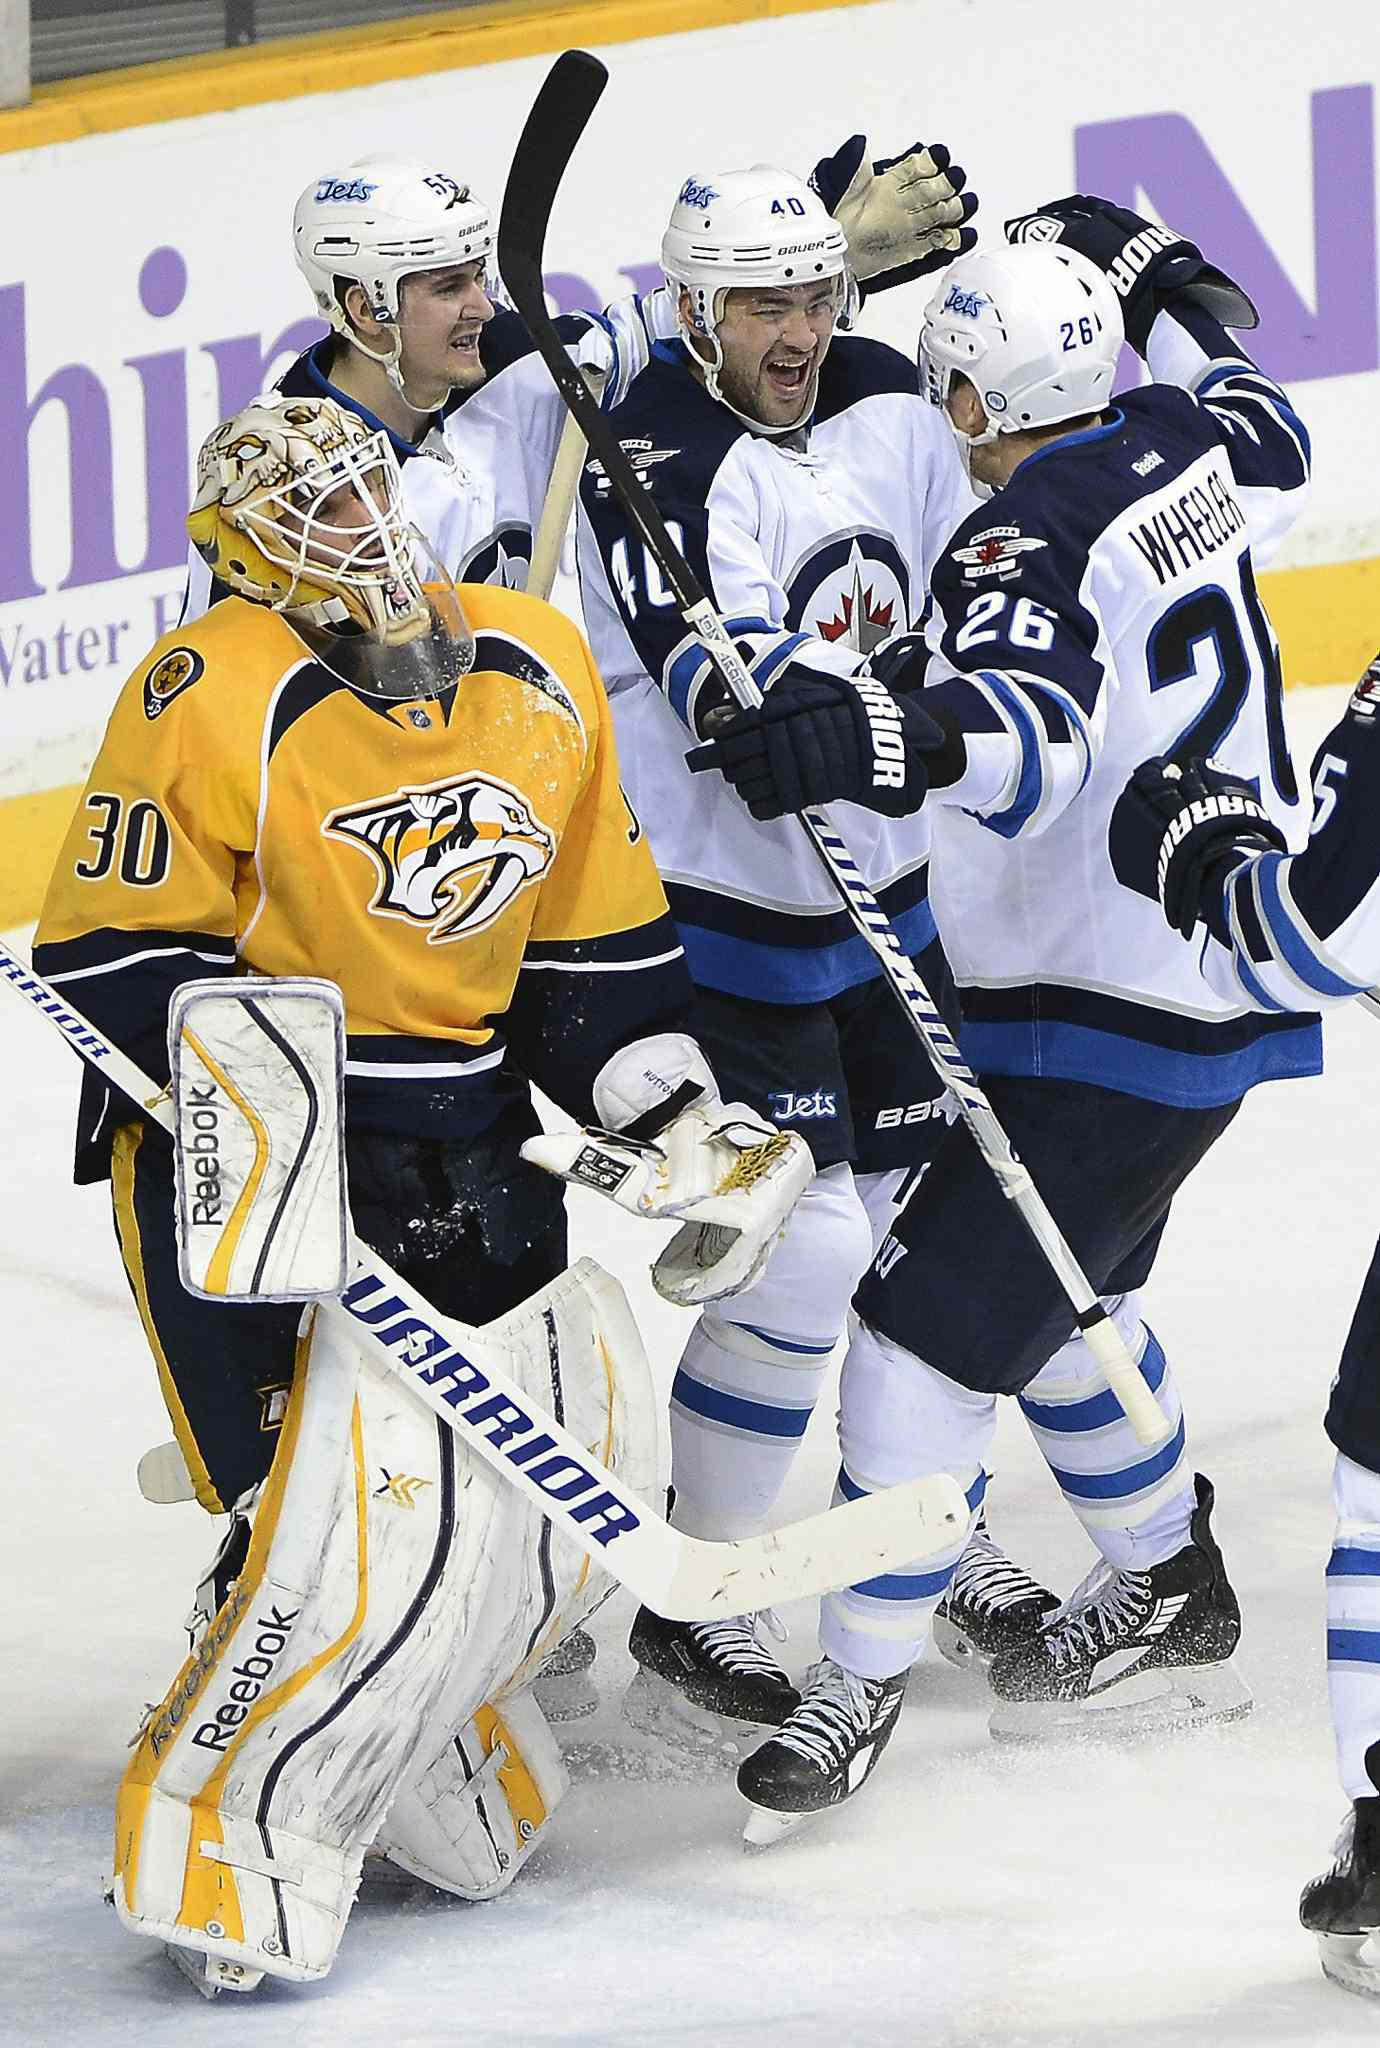 Winnipeg Jets' right wing Devin Setoguchi (40) celebrates with Mark Scheifele (55) and Blake Wheeler (26) after Setoguchi scored a third-period goal against Nashville Predators' goalie Carter Hutton (30). The Jets won 3-1.